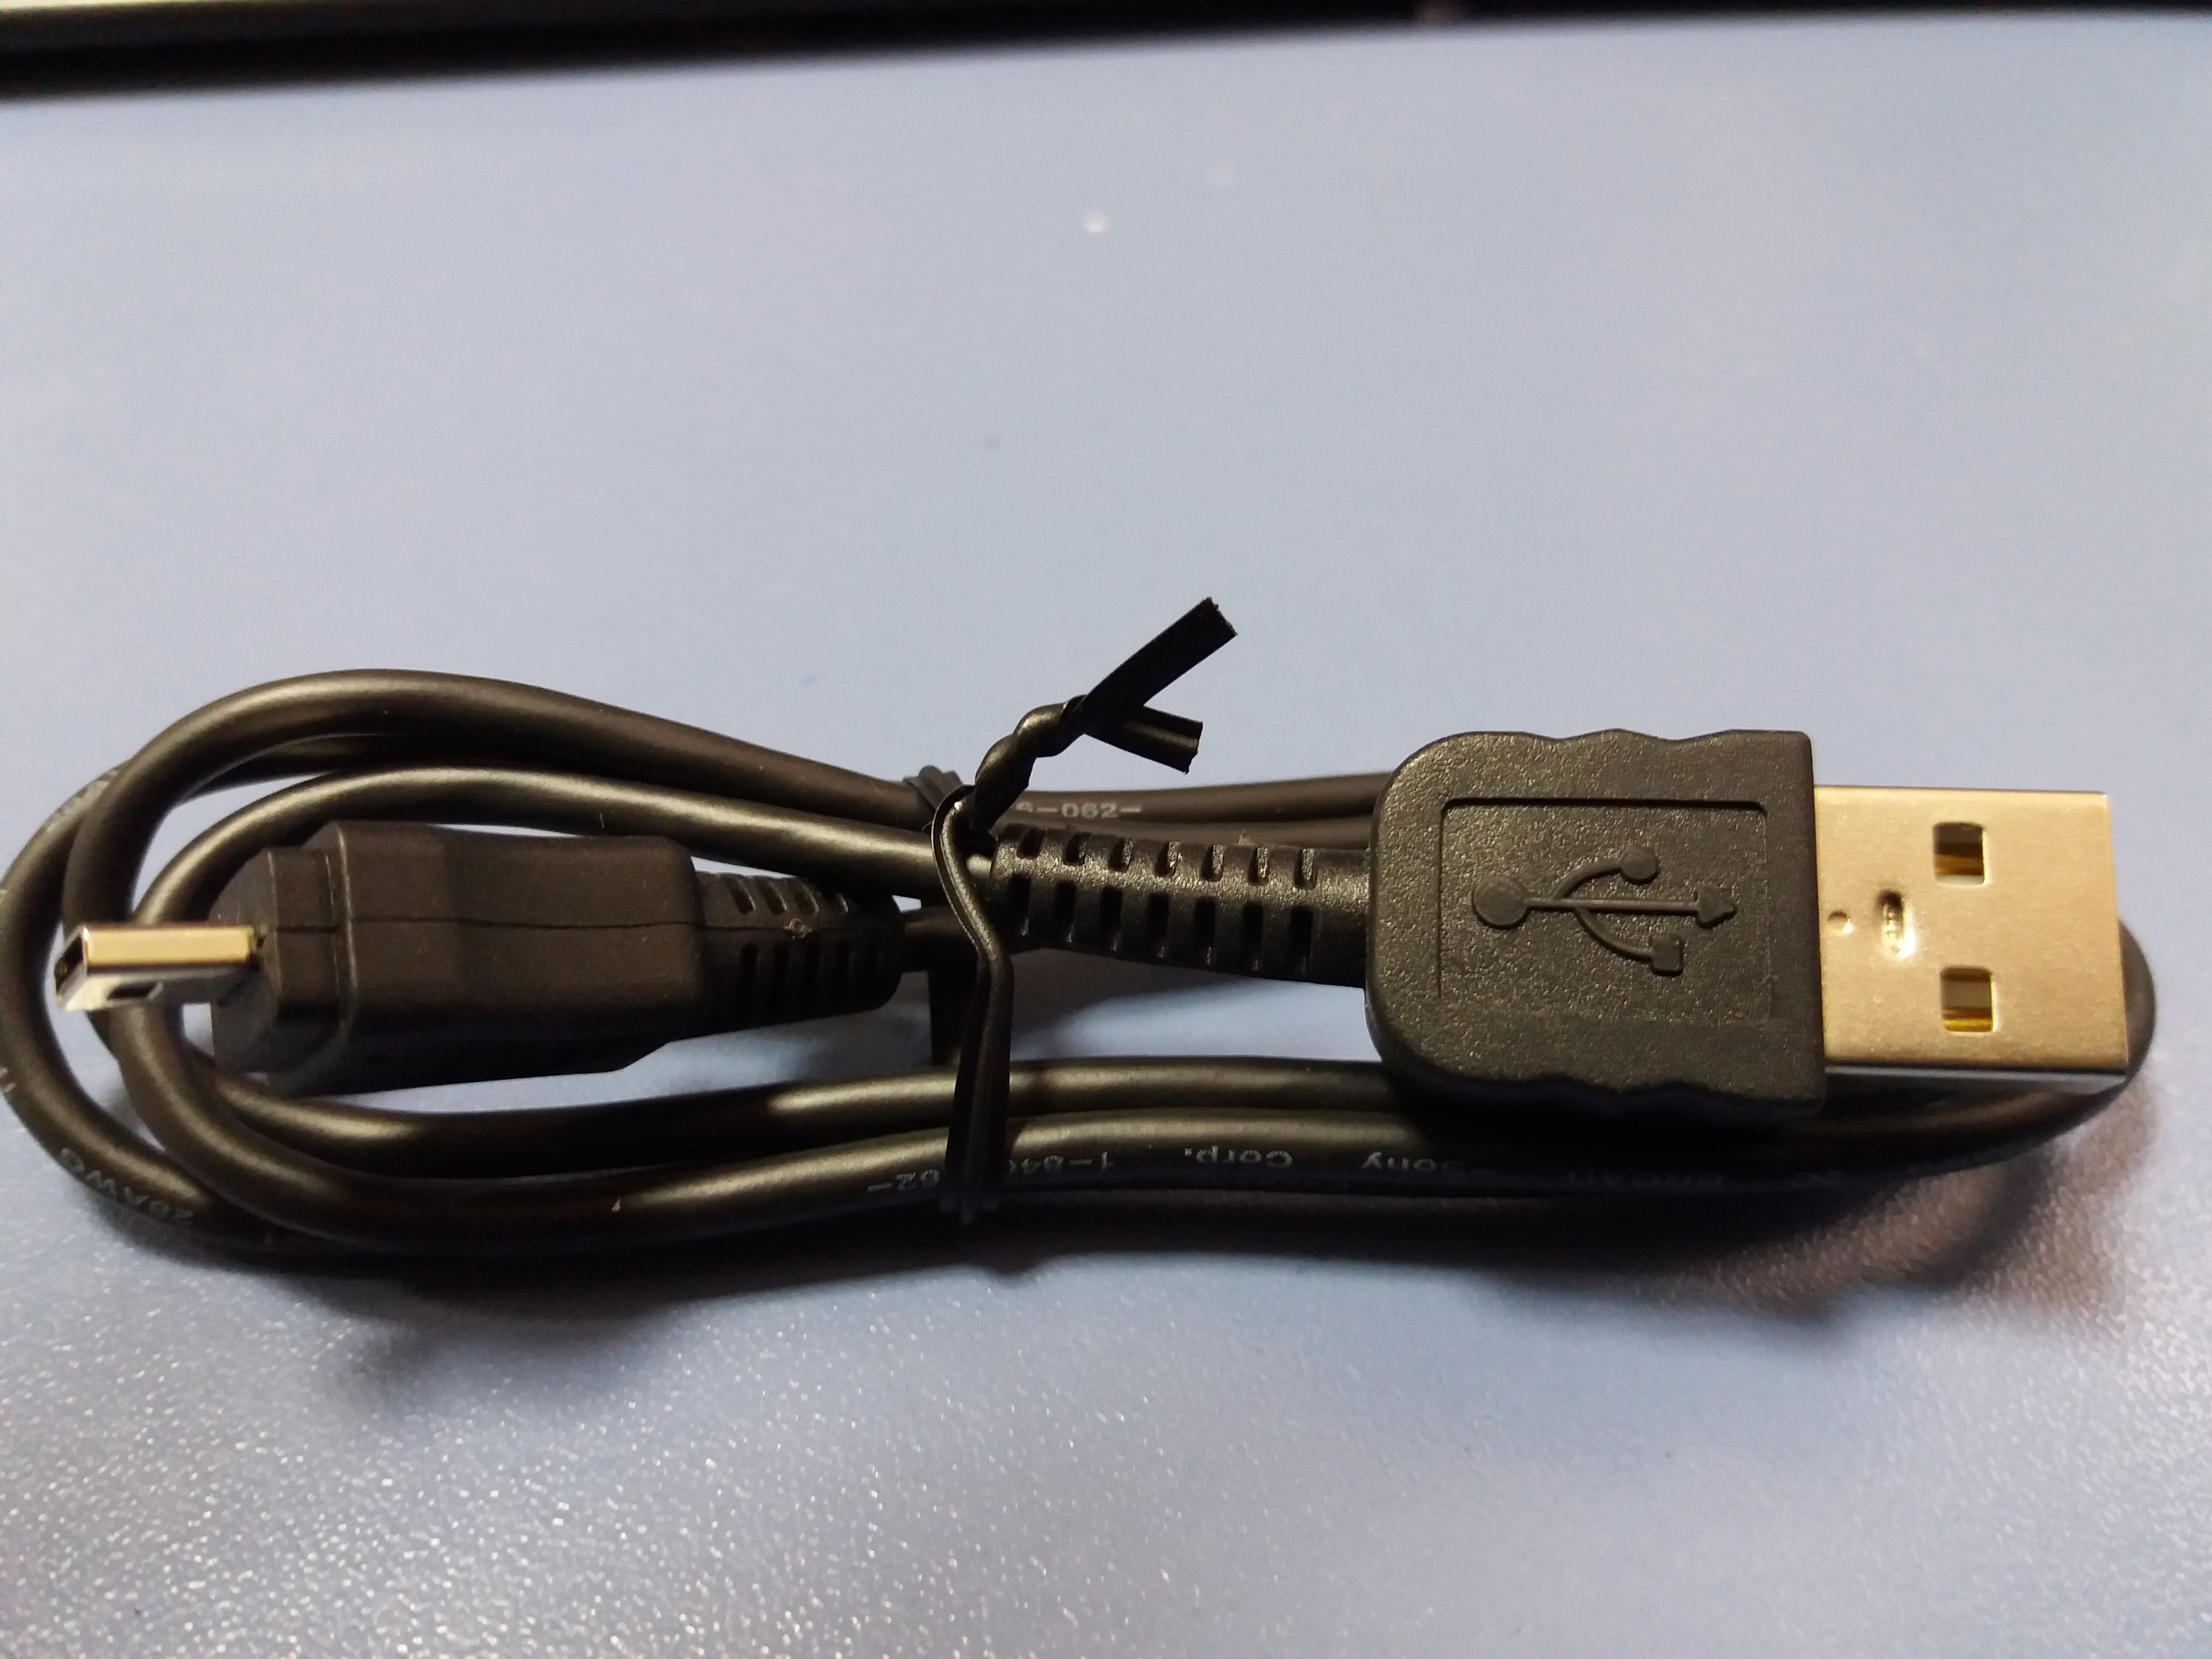 184606221 CABLE,WITCH CONNECTION